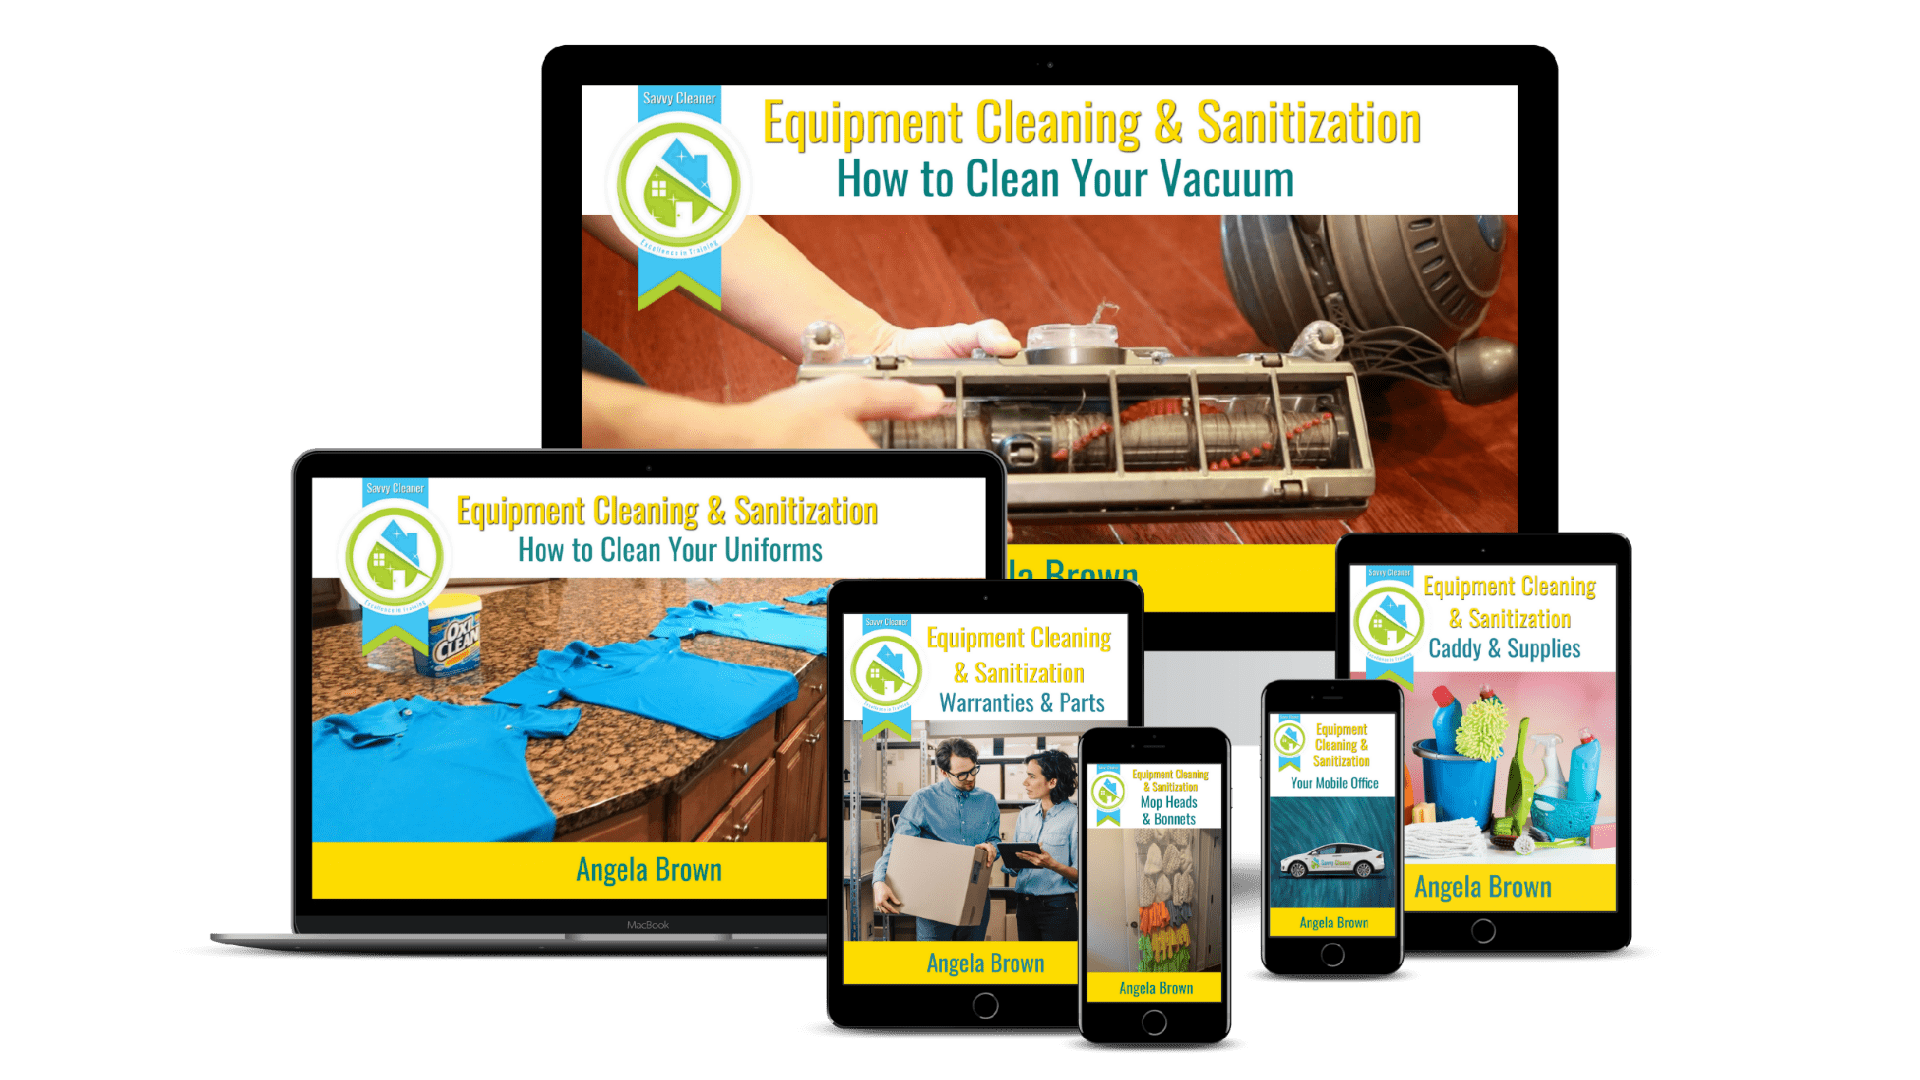 Equipment Cleaning & Sanitization Course, Savvy Cleaner Training 1920